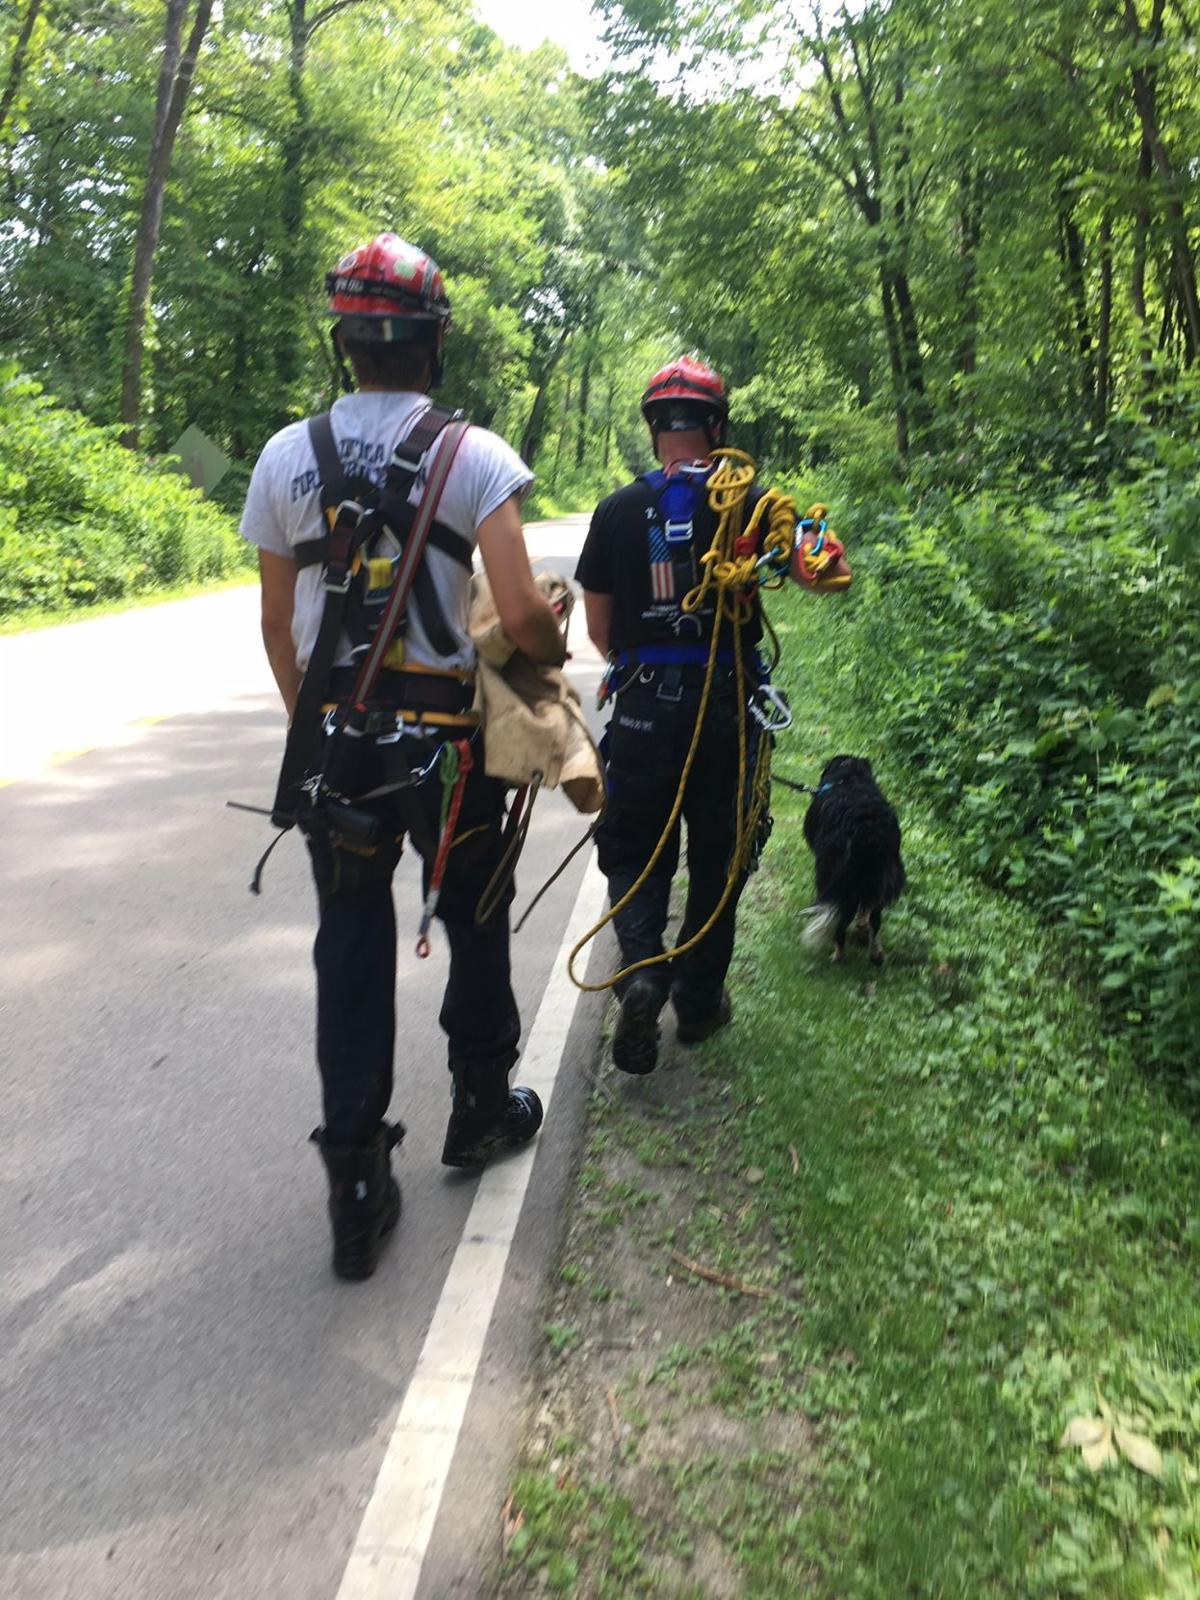 Dog rescued affer fall at St. Rock   photo courtesy of Sgt. Phil WIre